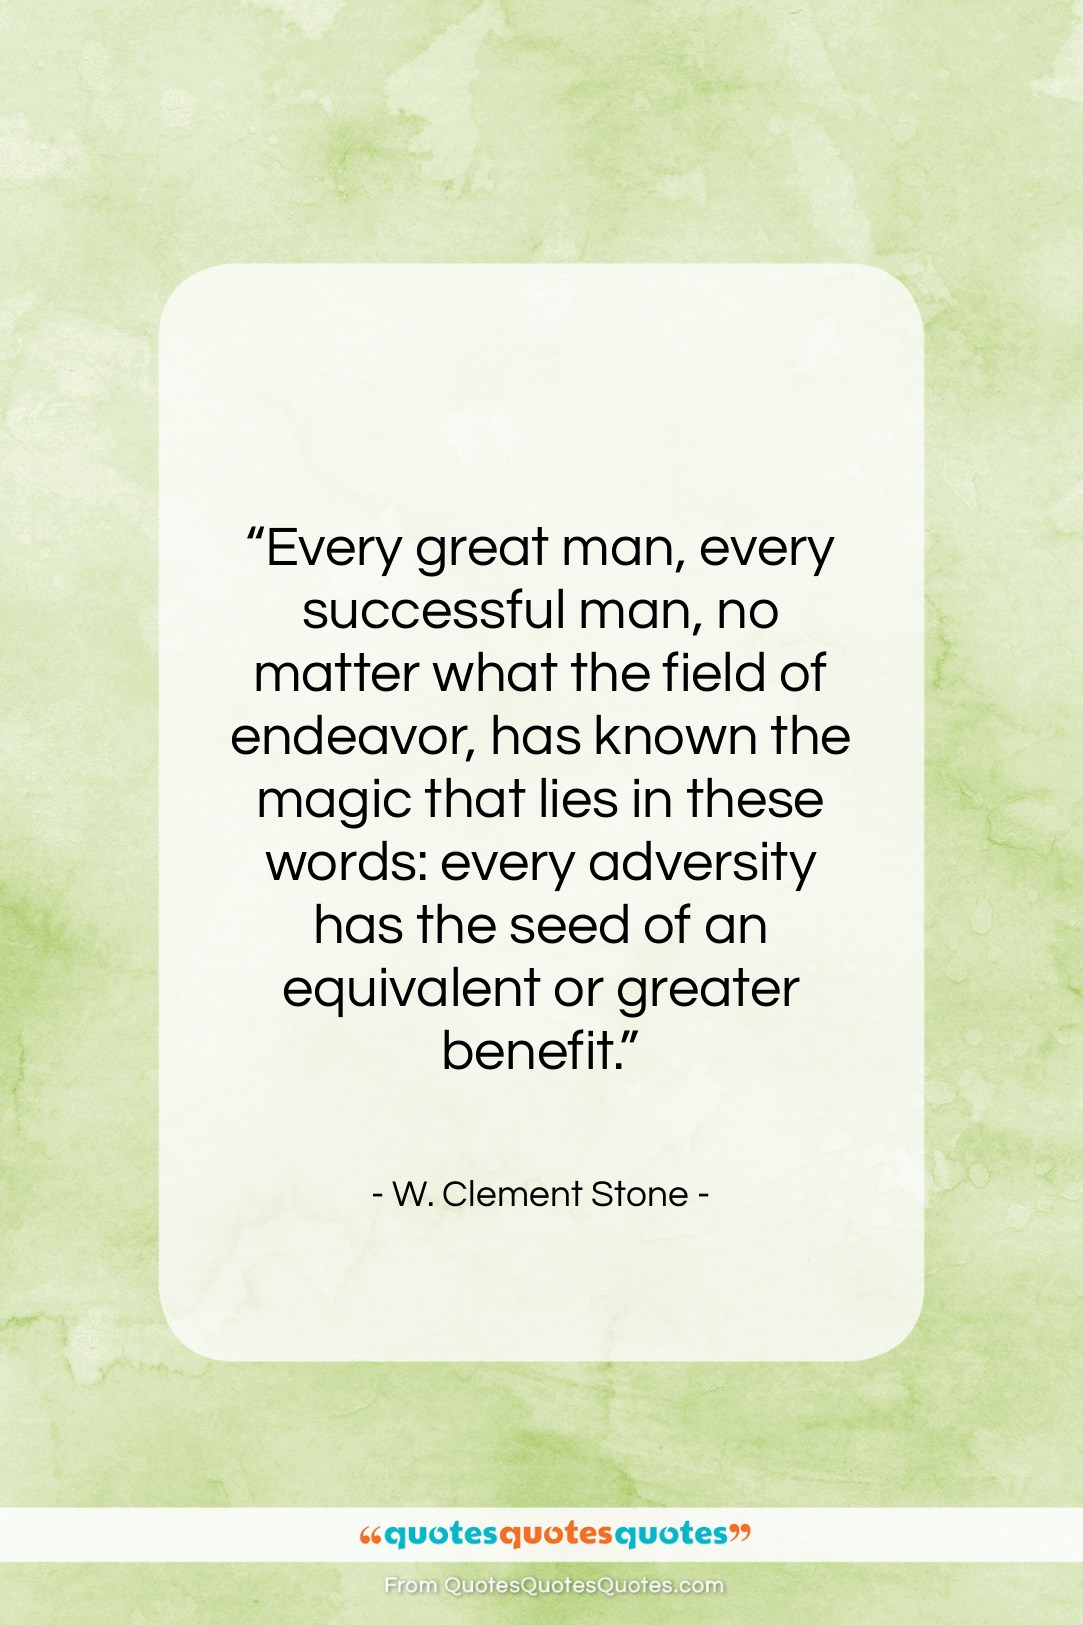 """W. Clement Stone quote: """"Every great man, every successful man, no…""""- at QuotesQuotesQuotes.com"""